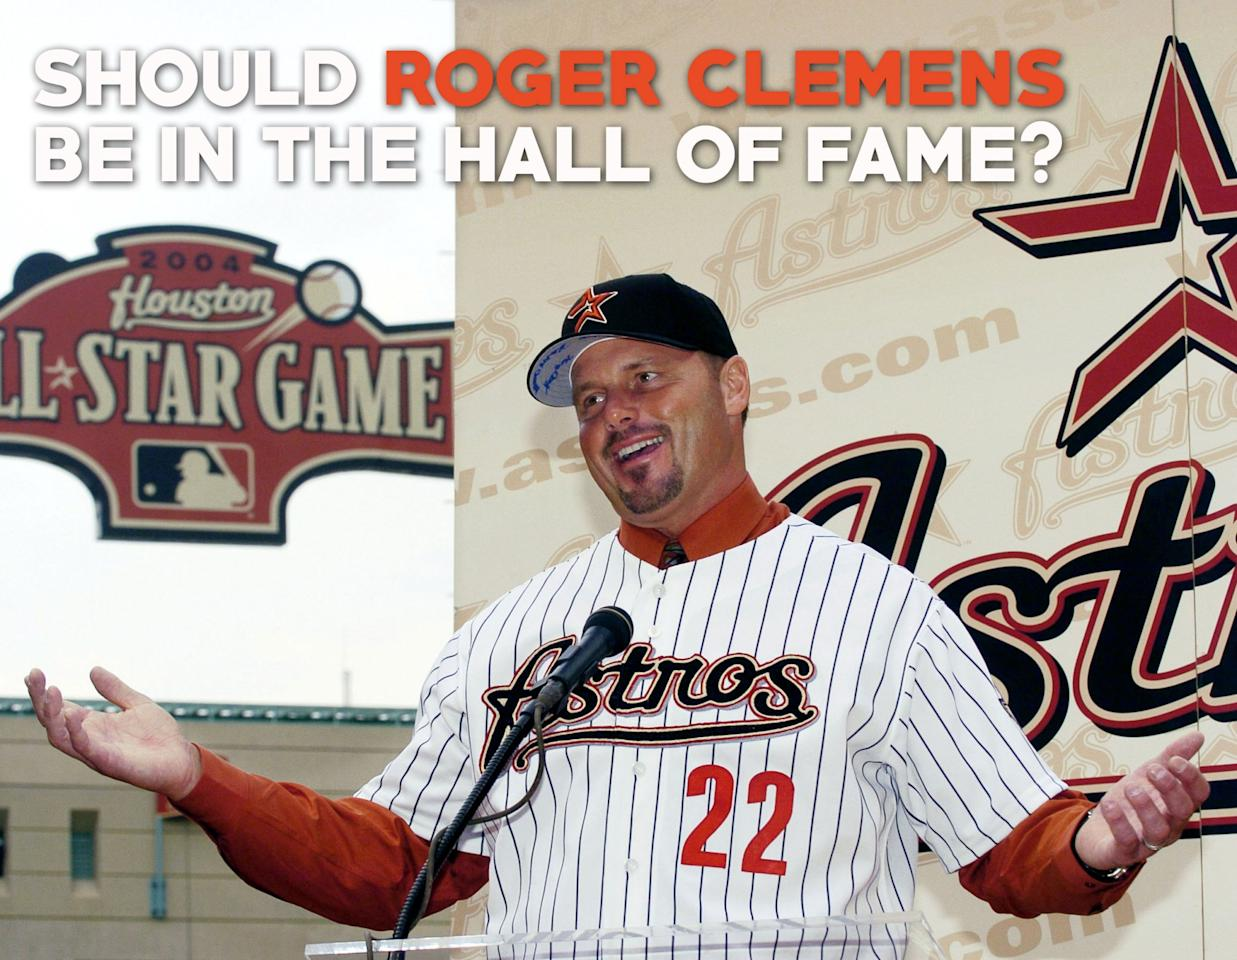 Roger Clemens: Is he a Hall of Famer?